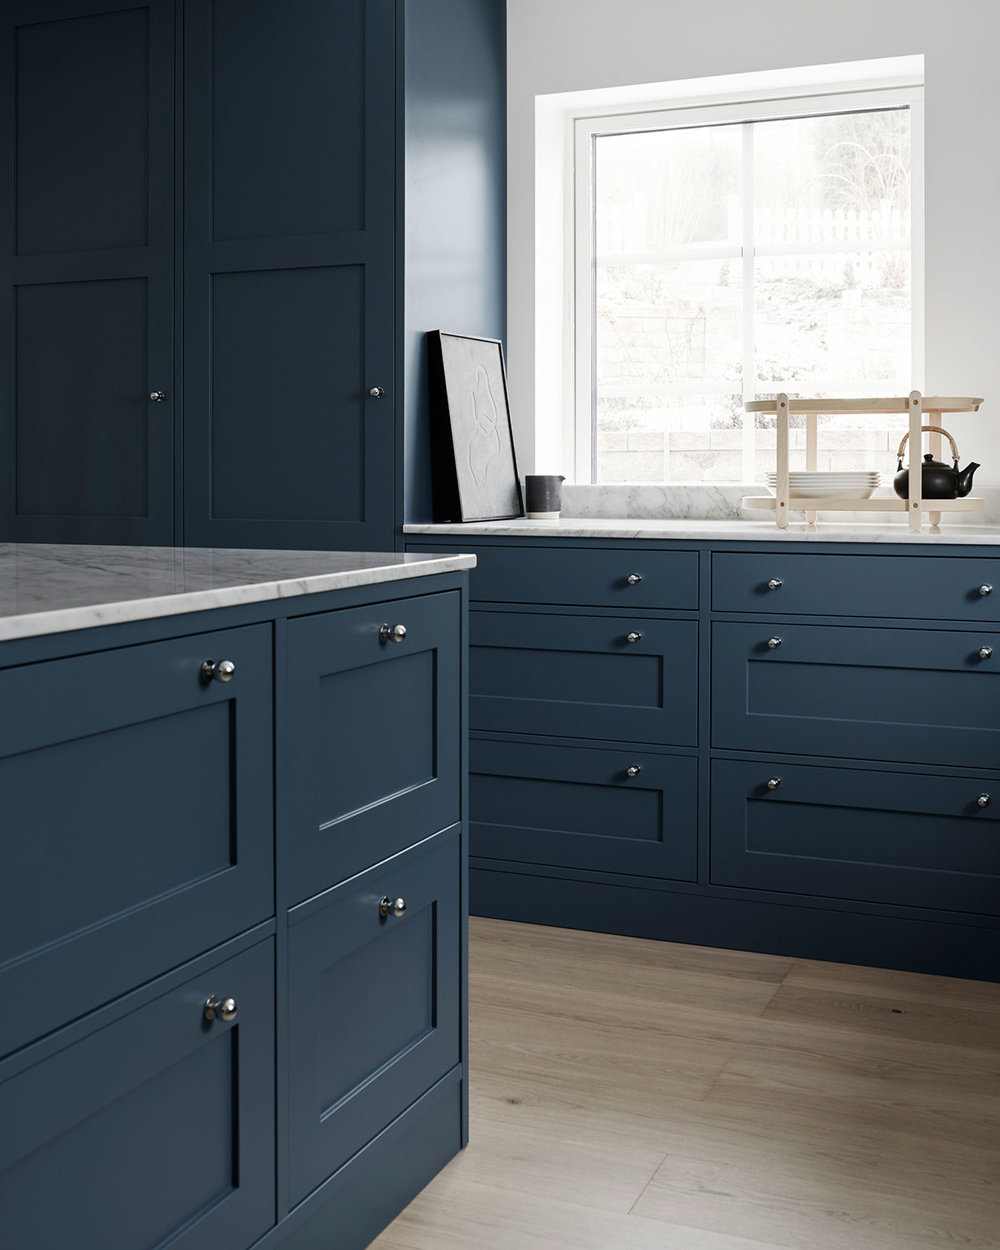 shaker kitchen design in blue and white Carrara marble countertop